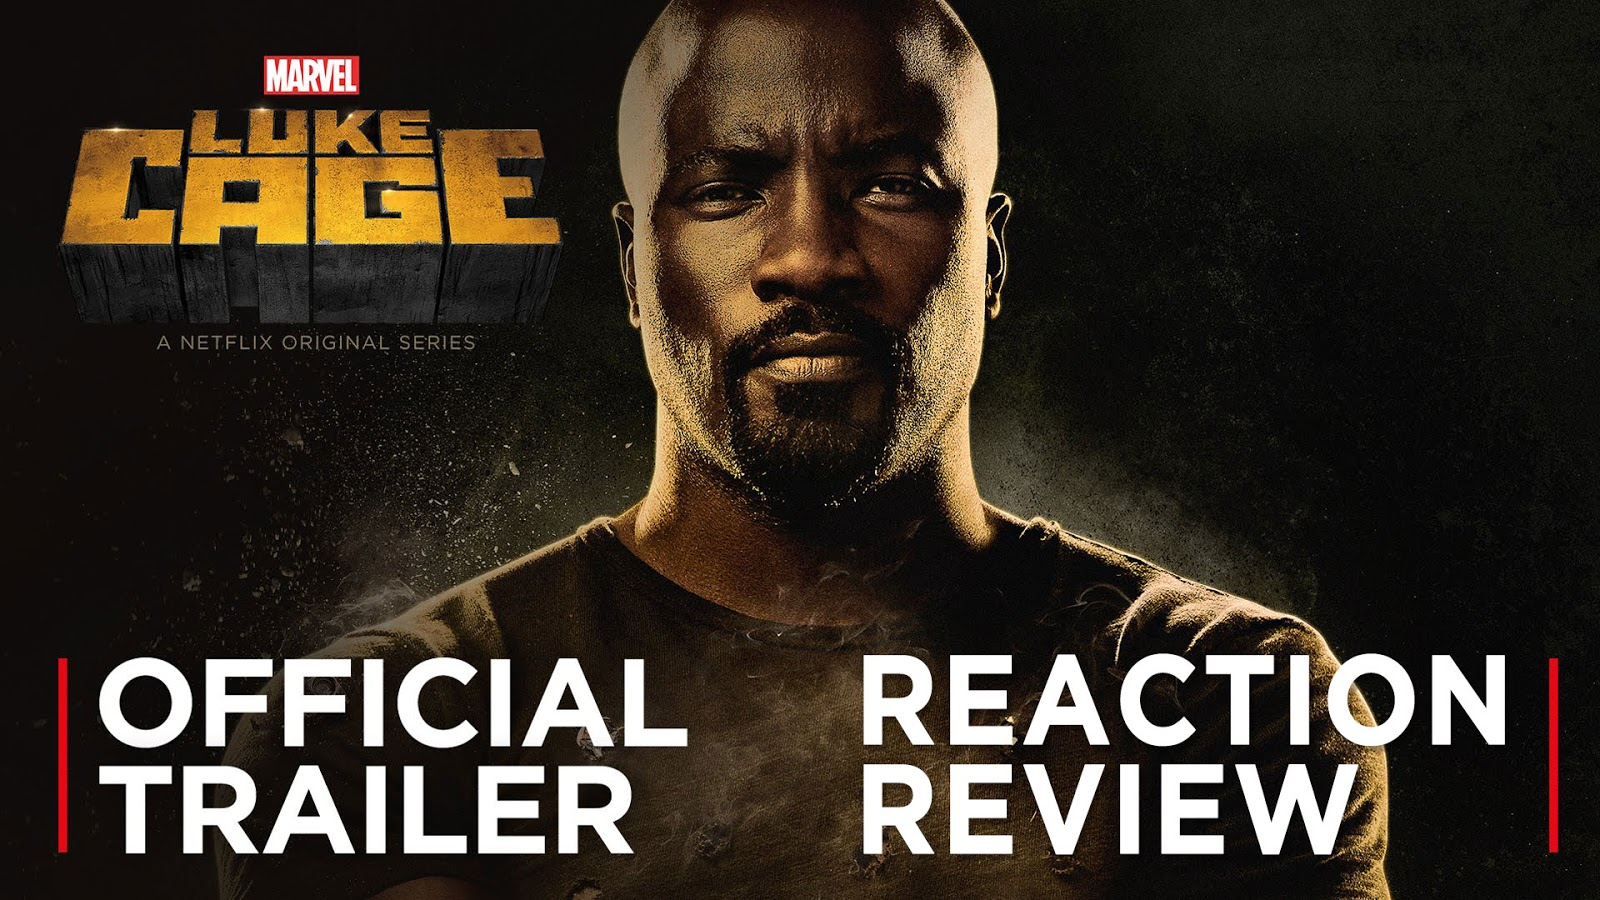 reaction to trailer for Luke Cage